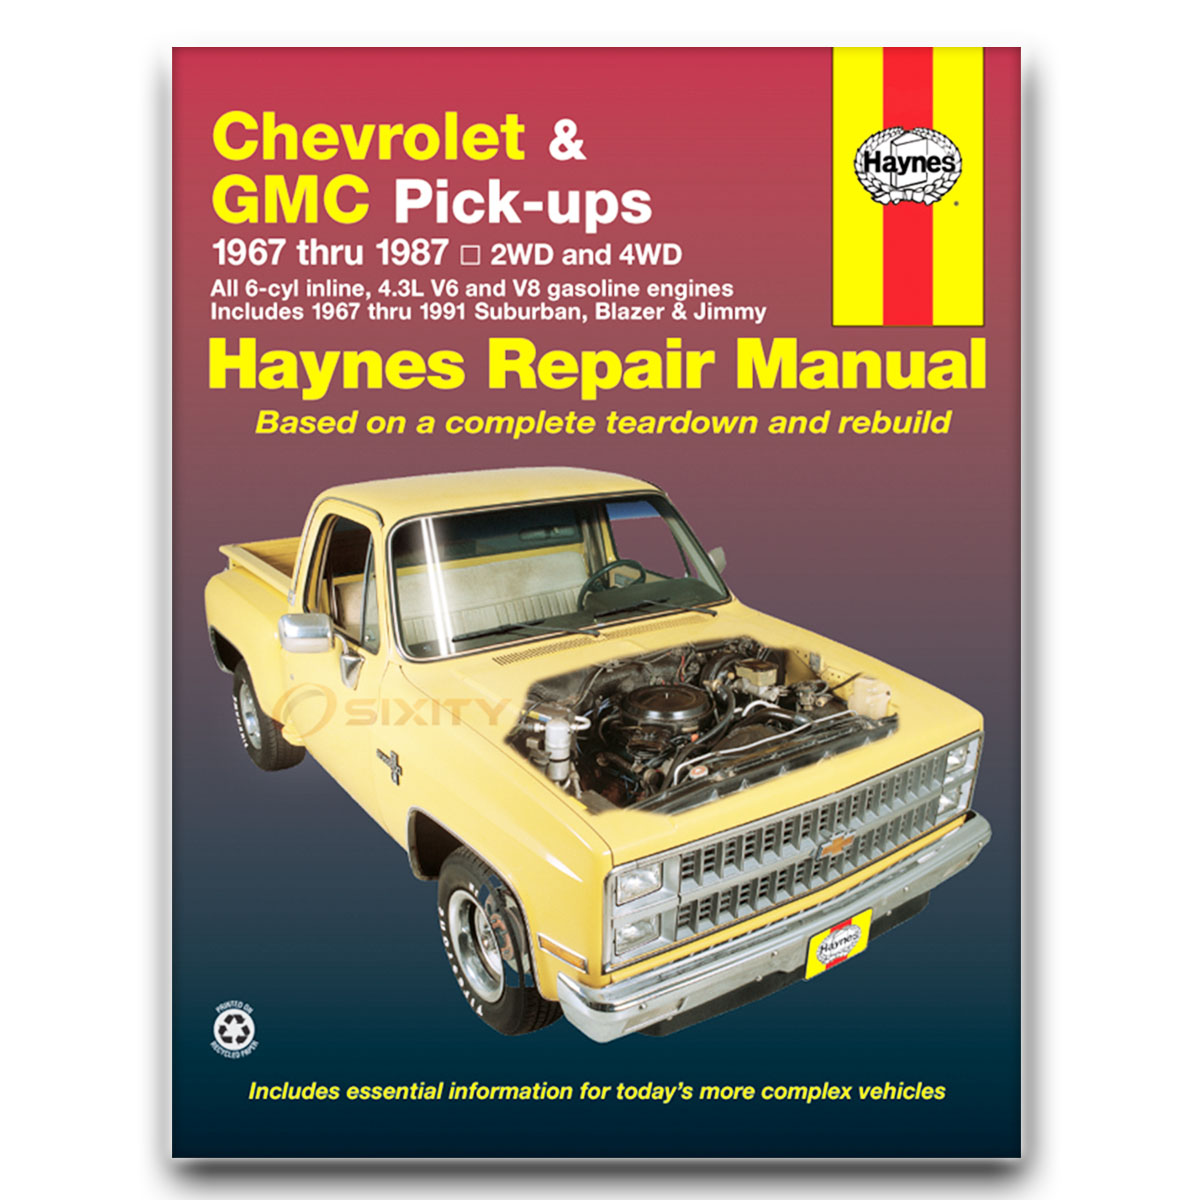 chevy c10 pickup haynes repair manual base shop service garage book rh ebay com GM V8 Engines First Chevrolet V8 Engine